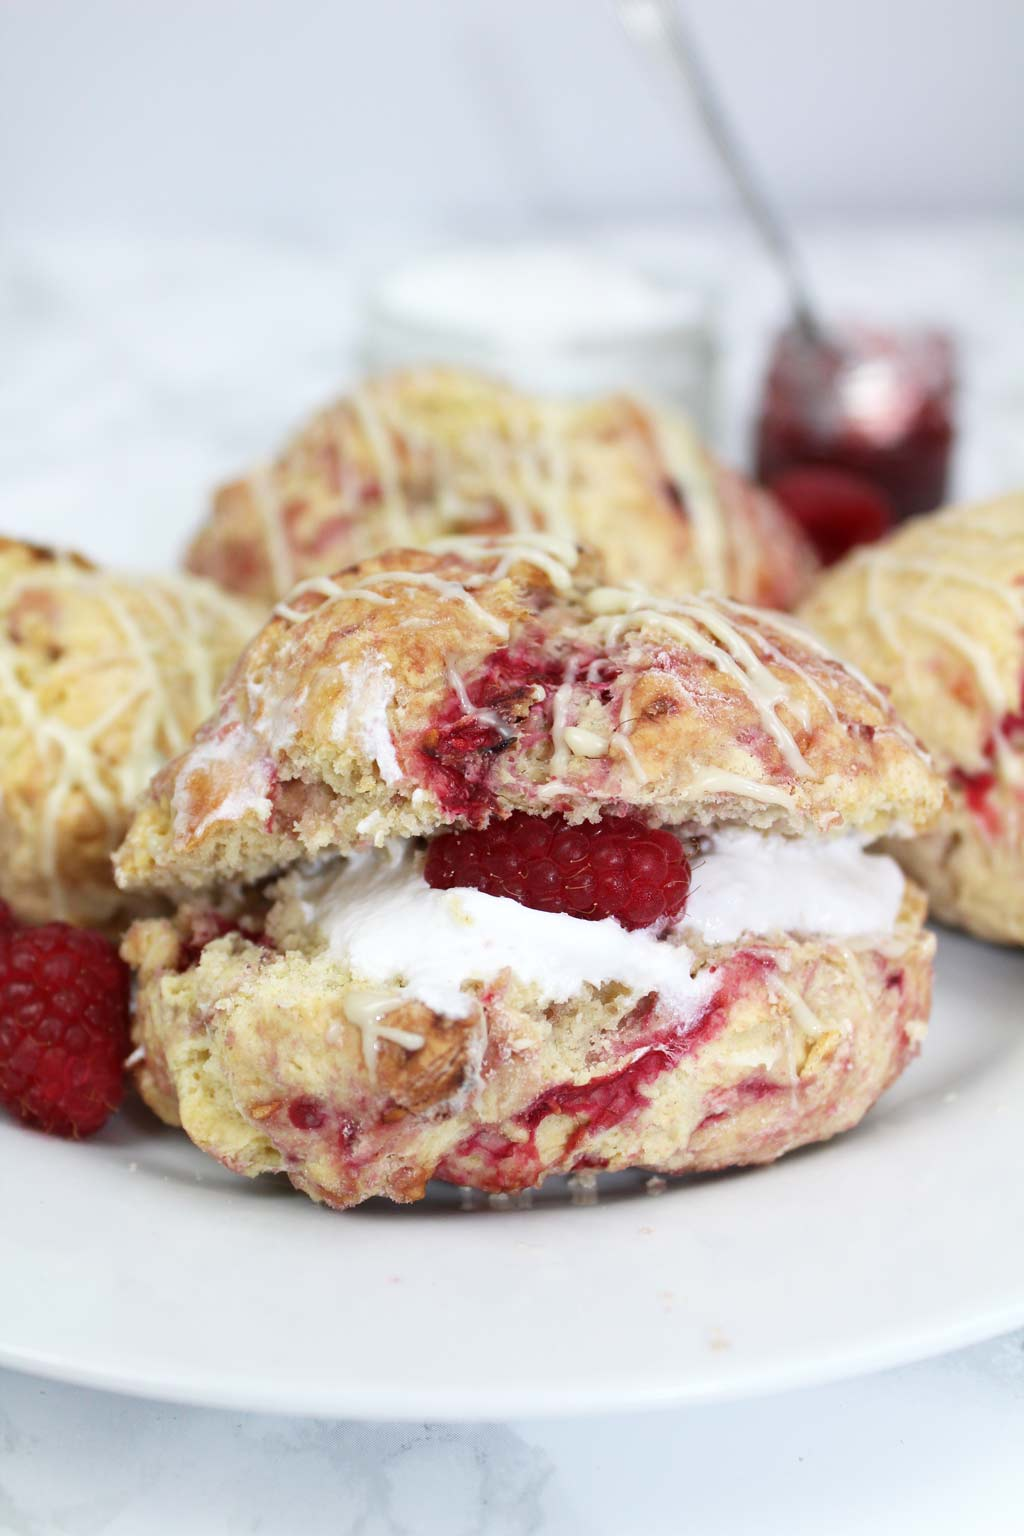 Raspberry white chocolate scone on a plate with whipped cream in the middle